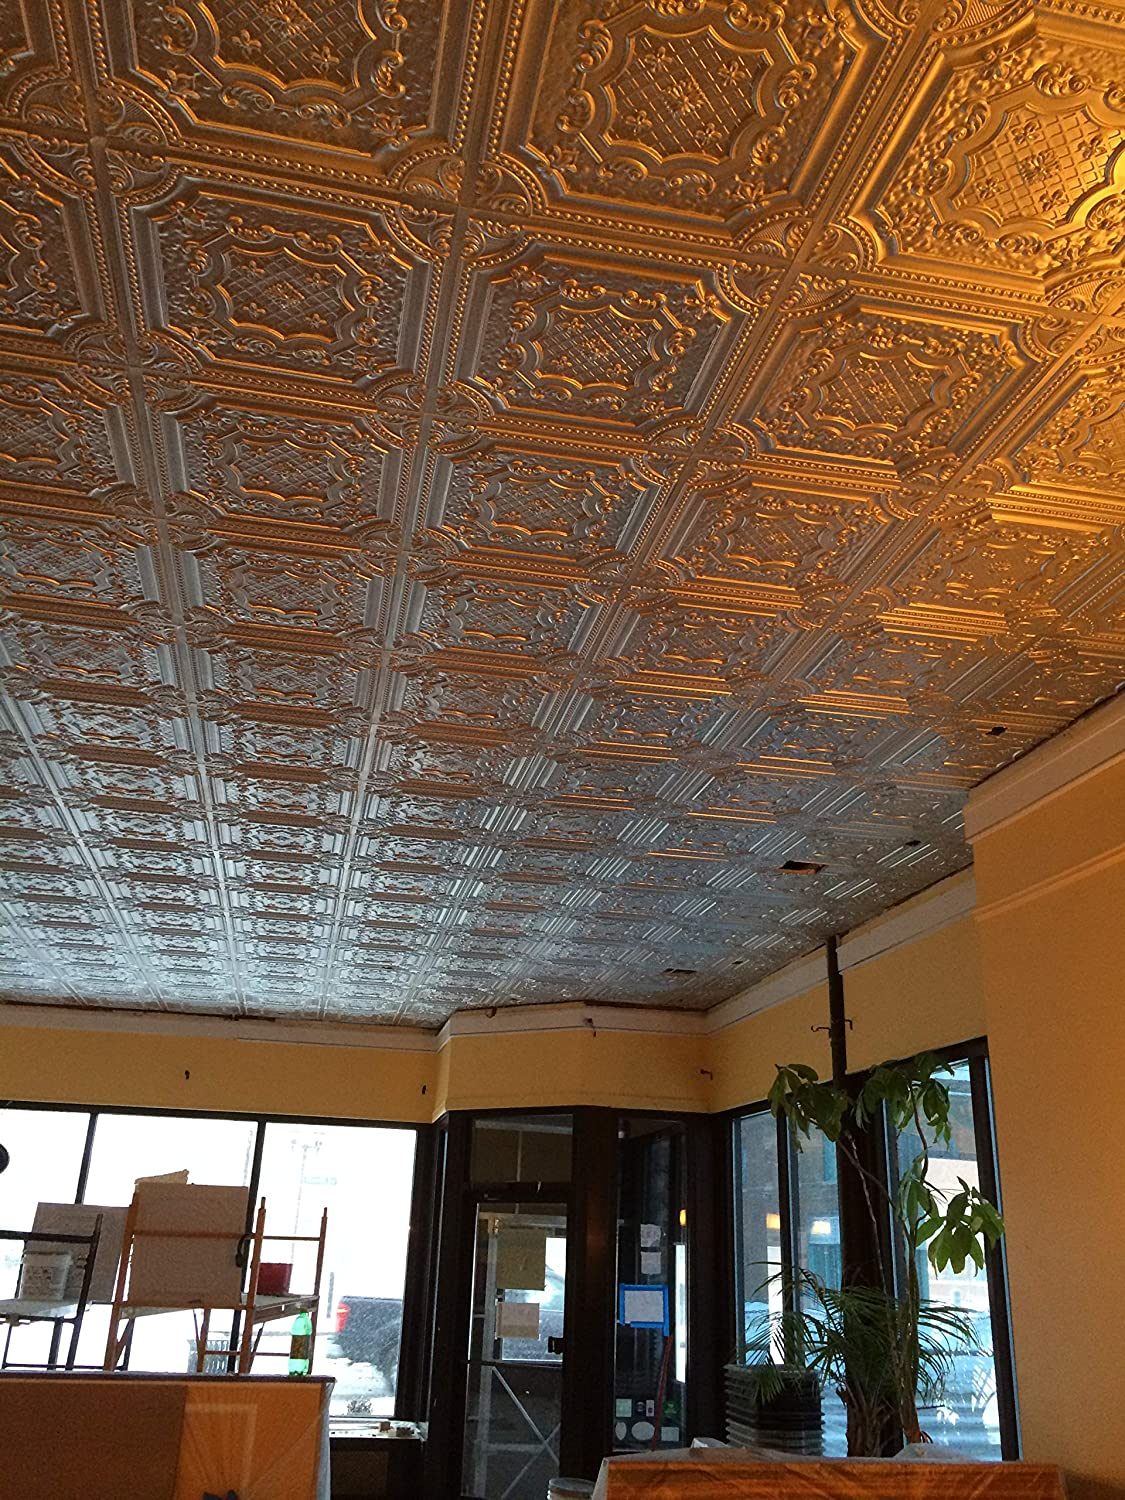 From Plain To Beautiful In Hours DCT10pa-24x24 Milan Ceiling Tile Patina